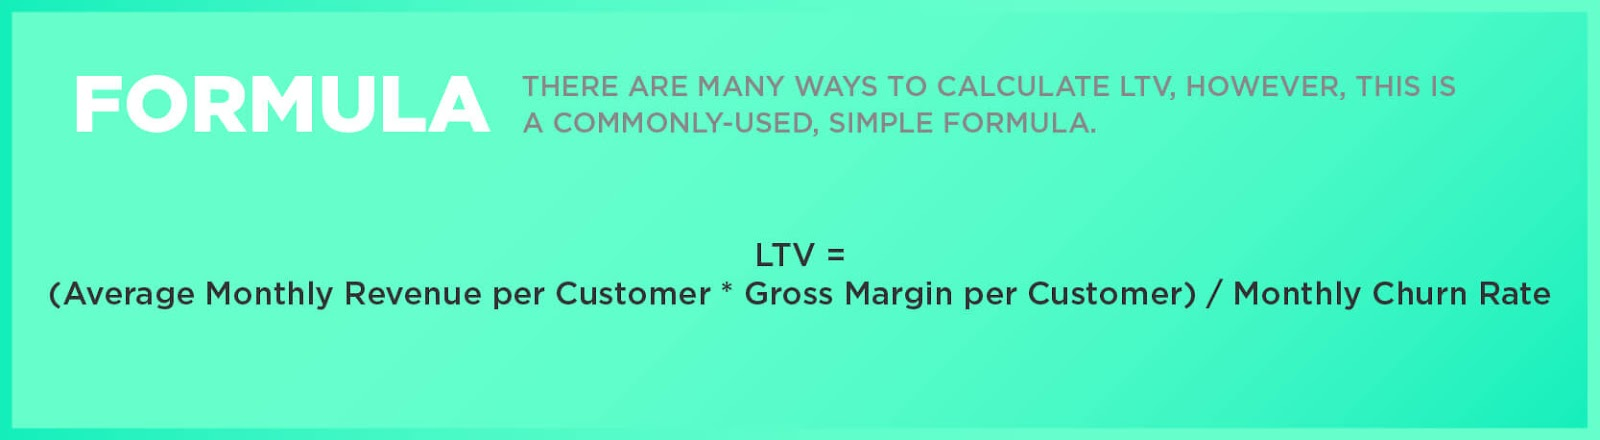 Formula: There are many ways to calculate LTV, however, this is a commonly-used, simple formula. LTV = (Average Monthly Revenue per Customer * Gross Margin per Customer) / Monthly Churn Rate